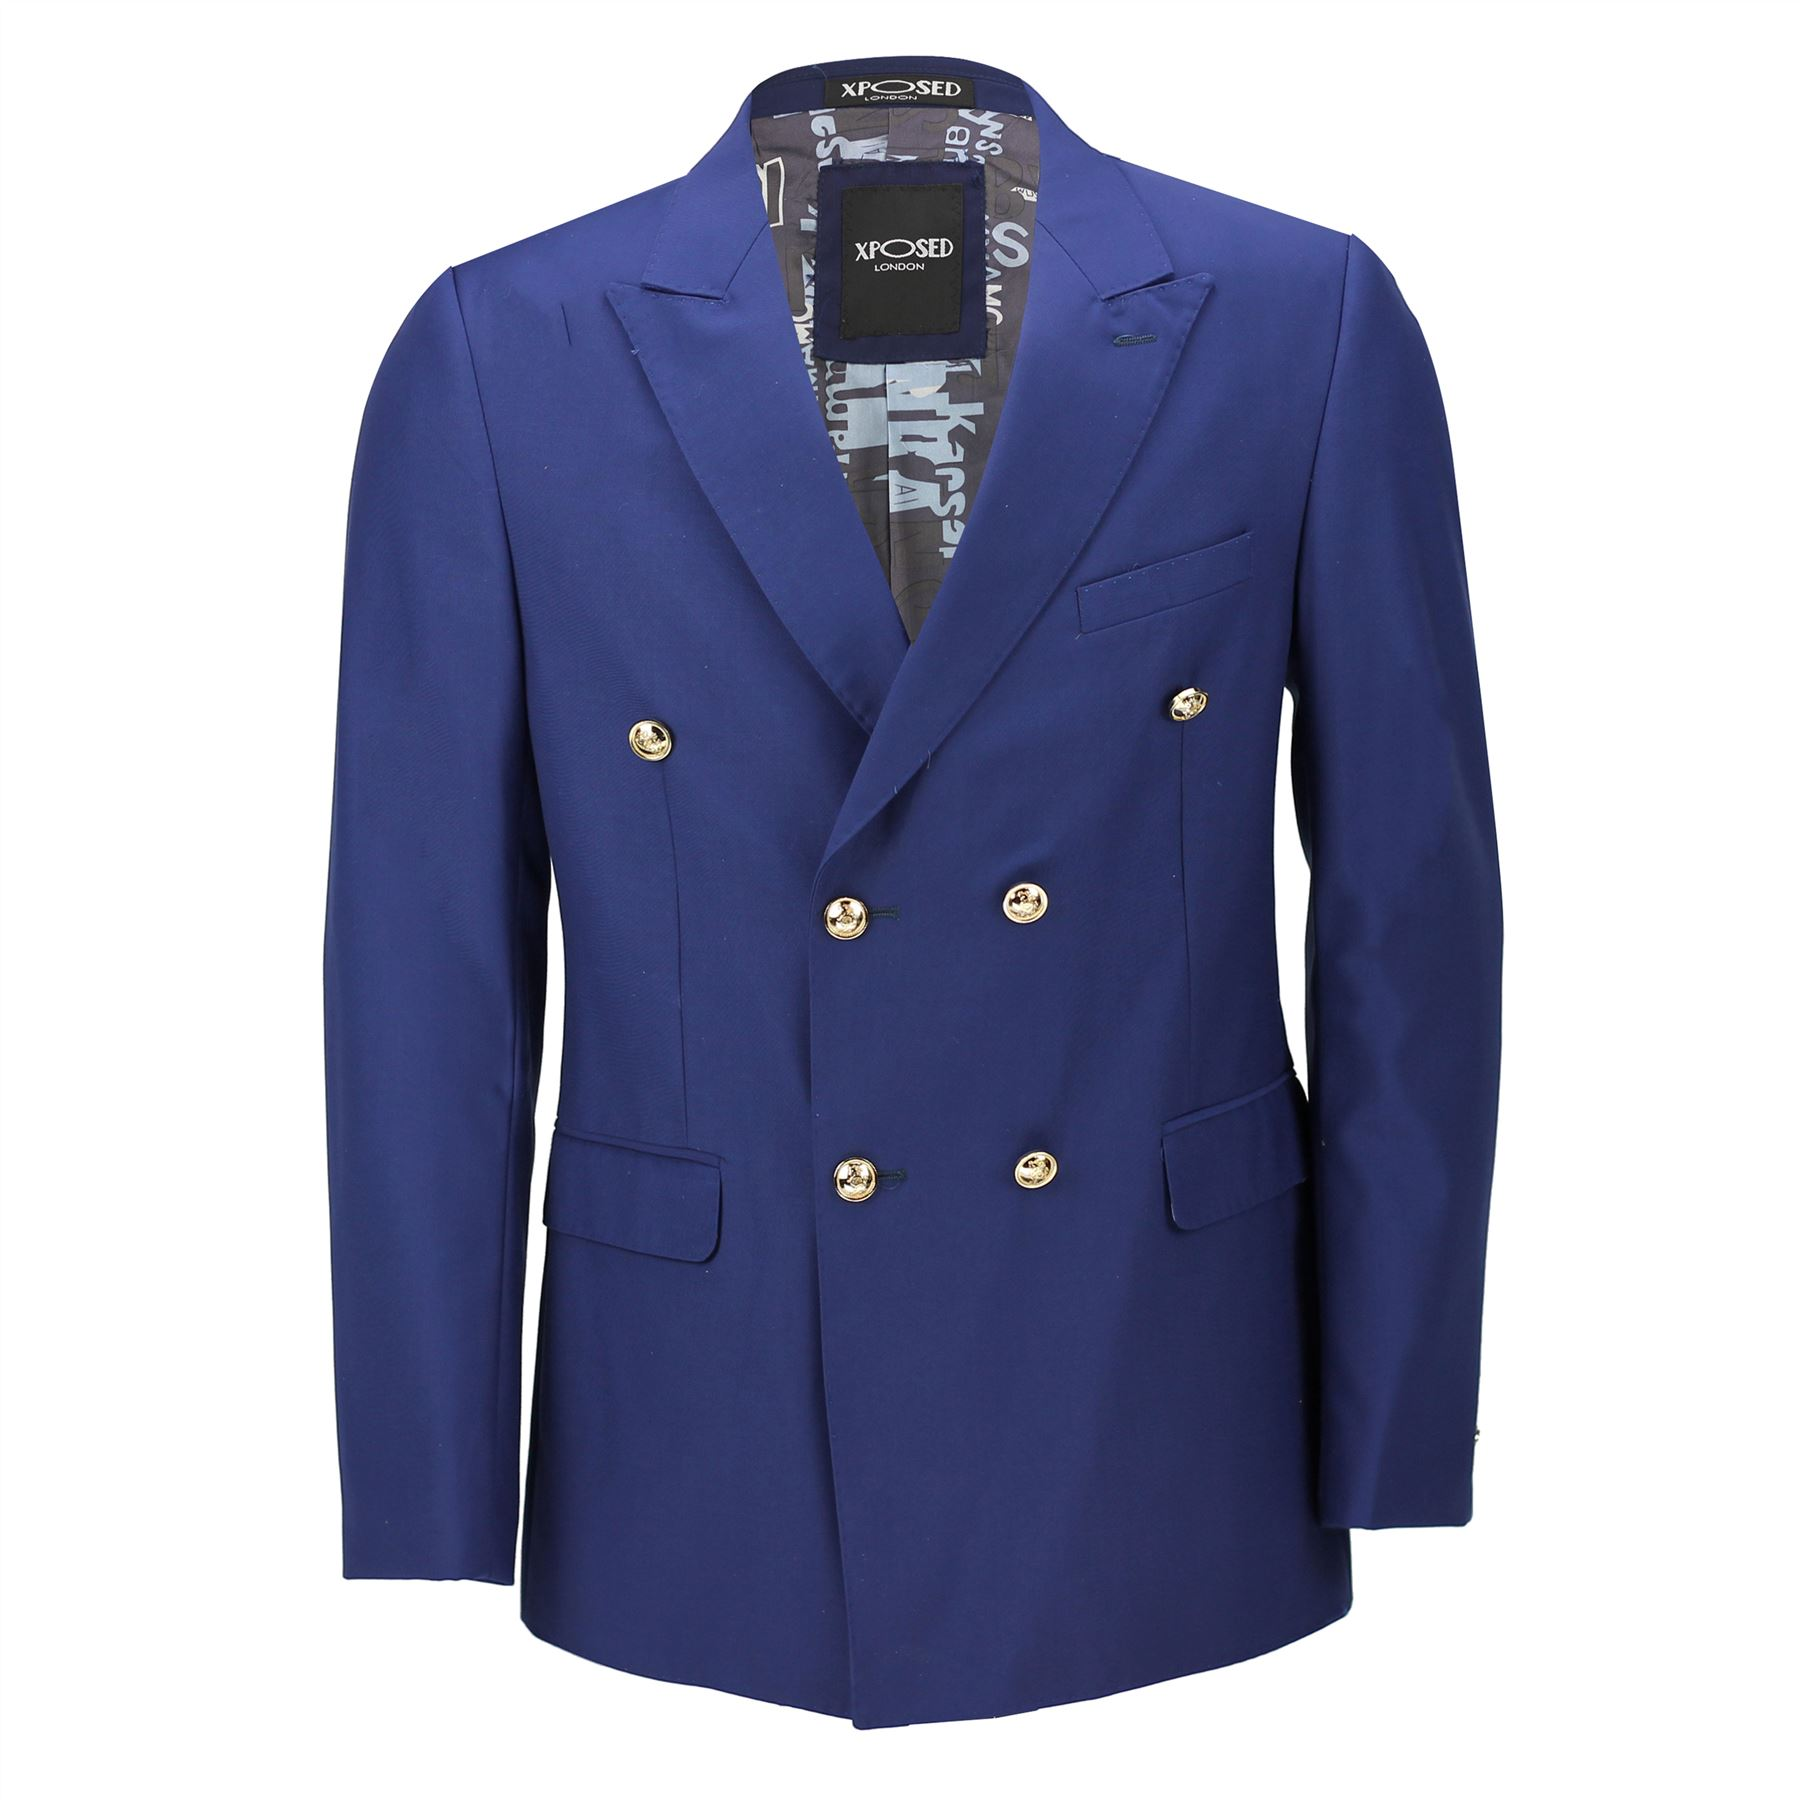 Details about Banana Republic Womens Navy Blue One Button Fitted Blazer Suit Jacket SZ 6. Banana Republic Womens Navy Blue One Button Fitted Blazer Suit Jacket SZ 6 | Add to watch list. Find out more about the Top-Rated Seller program - opens in a new window or tab. shopnew-5uel8qry.cf